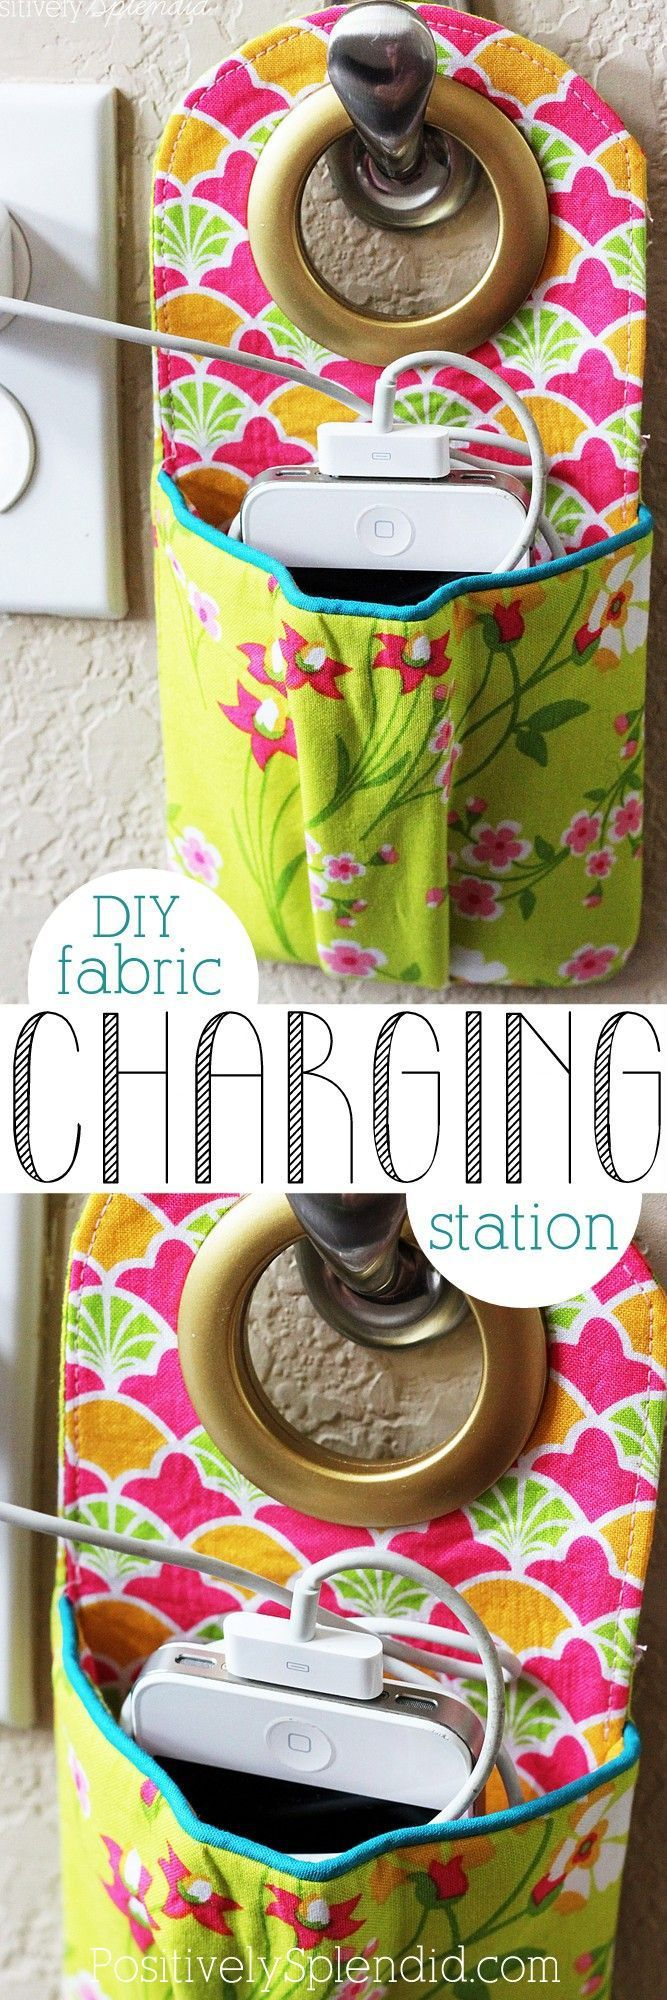 Amy from Positively Splendid shows us how to sew this very smart cell phone charging station that hangs from your wall plug while charging. You will learn how to